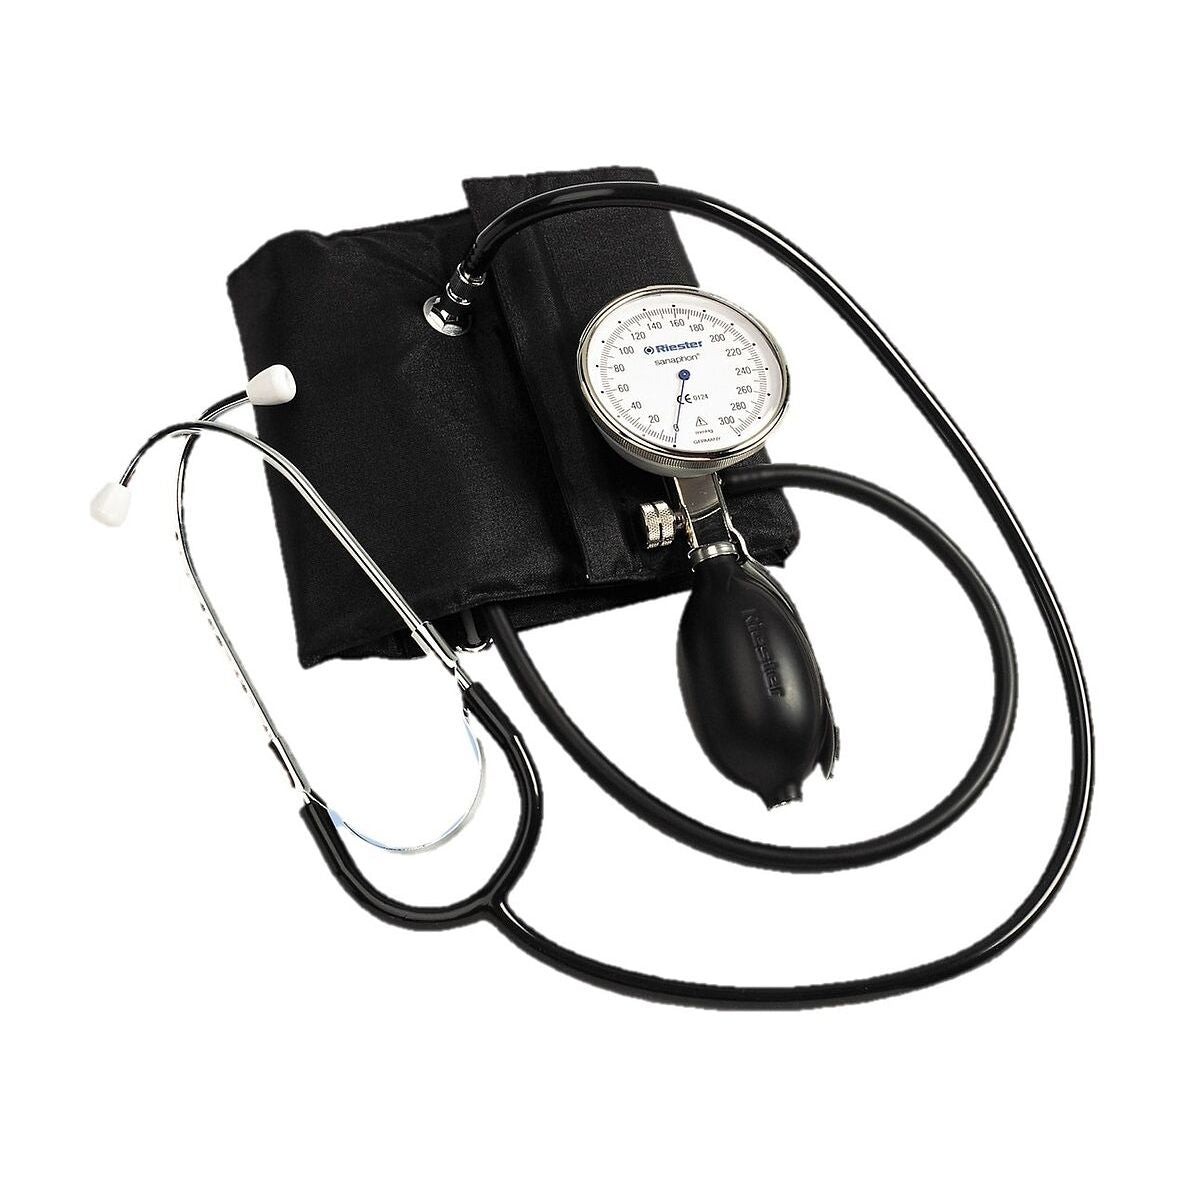 Riester Precisa N with Stethoscope and Cuff